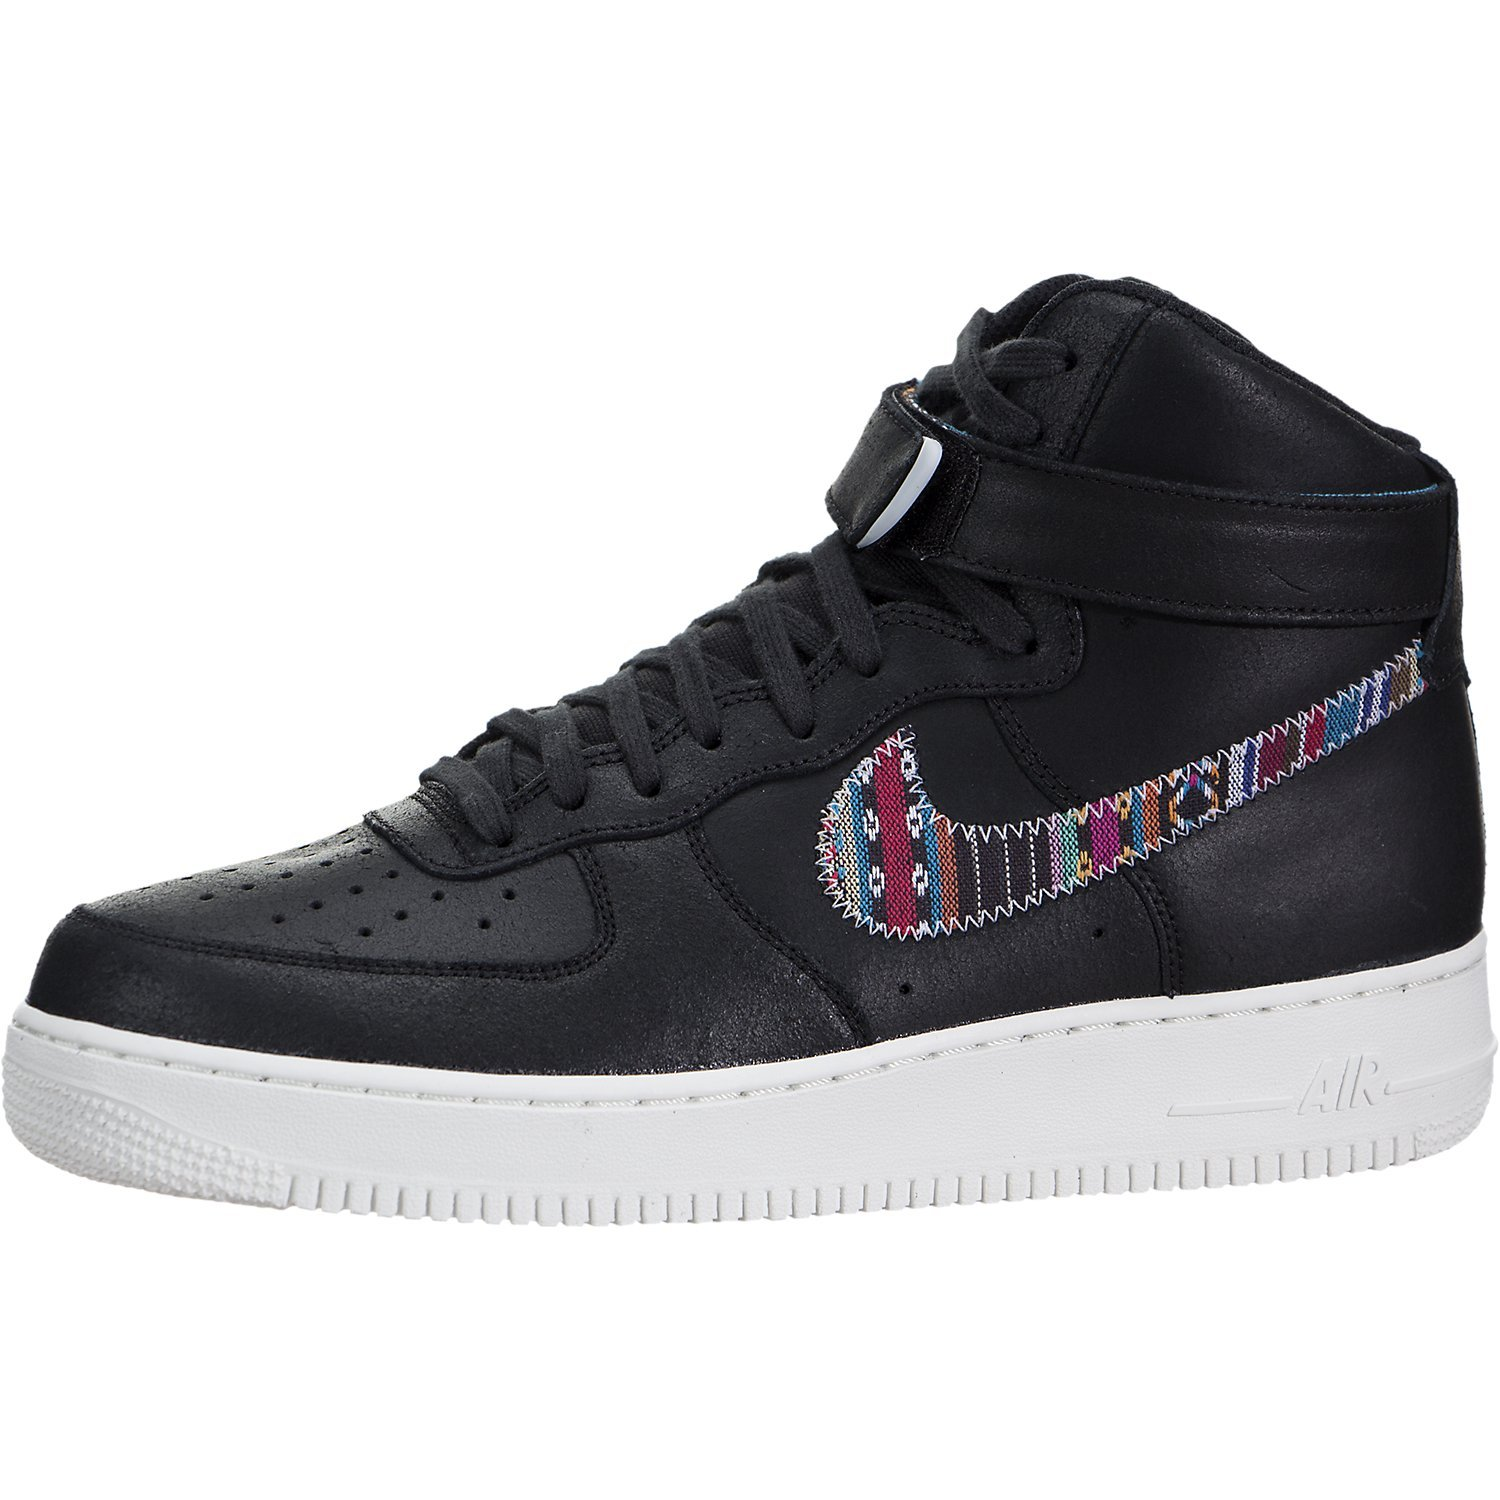 e7ffa976a9c0b Galleon - Nike Air Force 1 High '07 LV8 Black